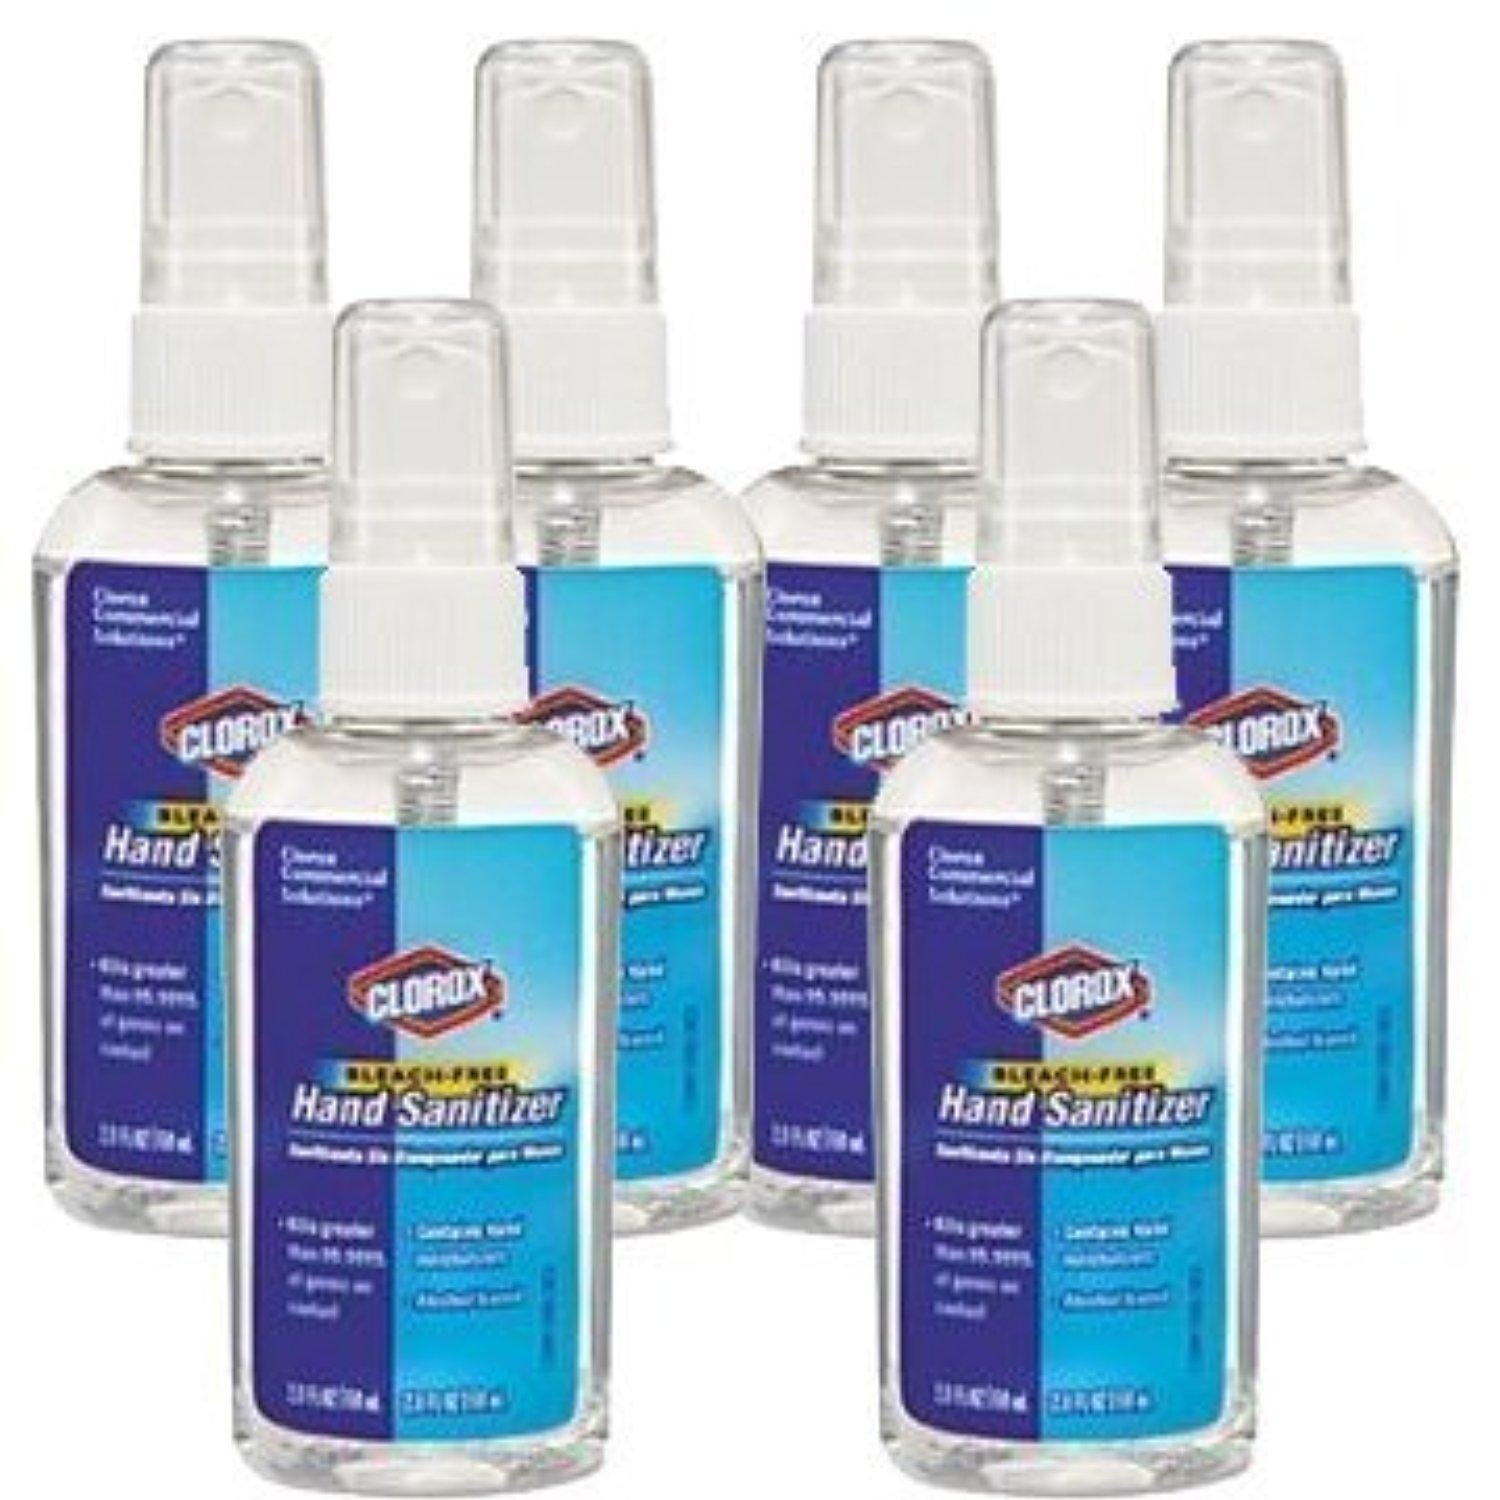 Clorox CLO 02174 Bleach-Free Hand Sanitizer, 2.0 FL OZ, (6-Pack), Contains Hand Moisturizers, Alcohol-Based